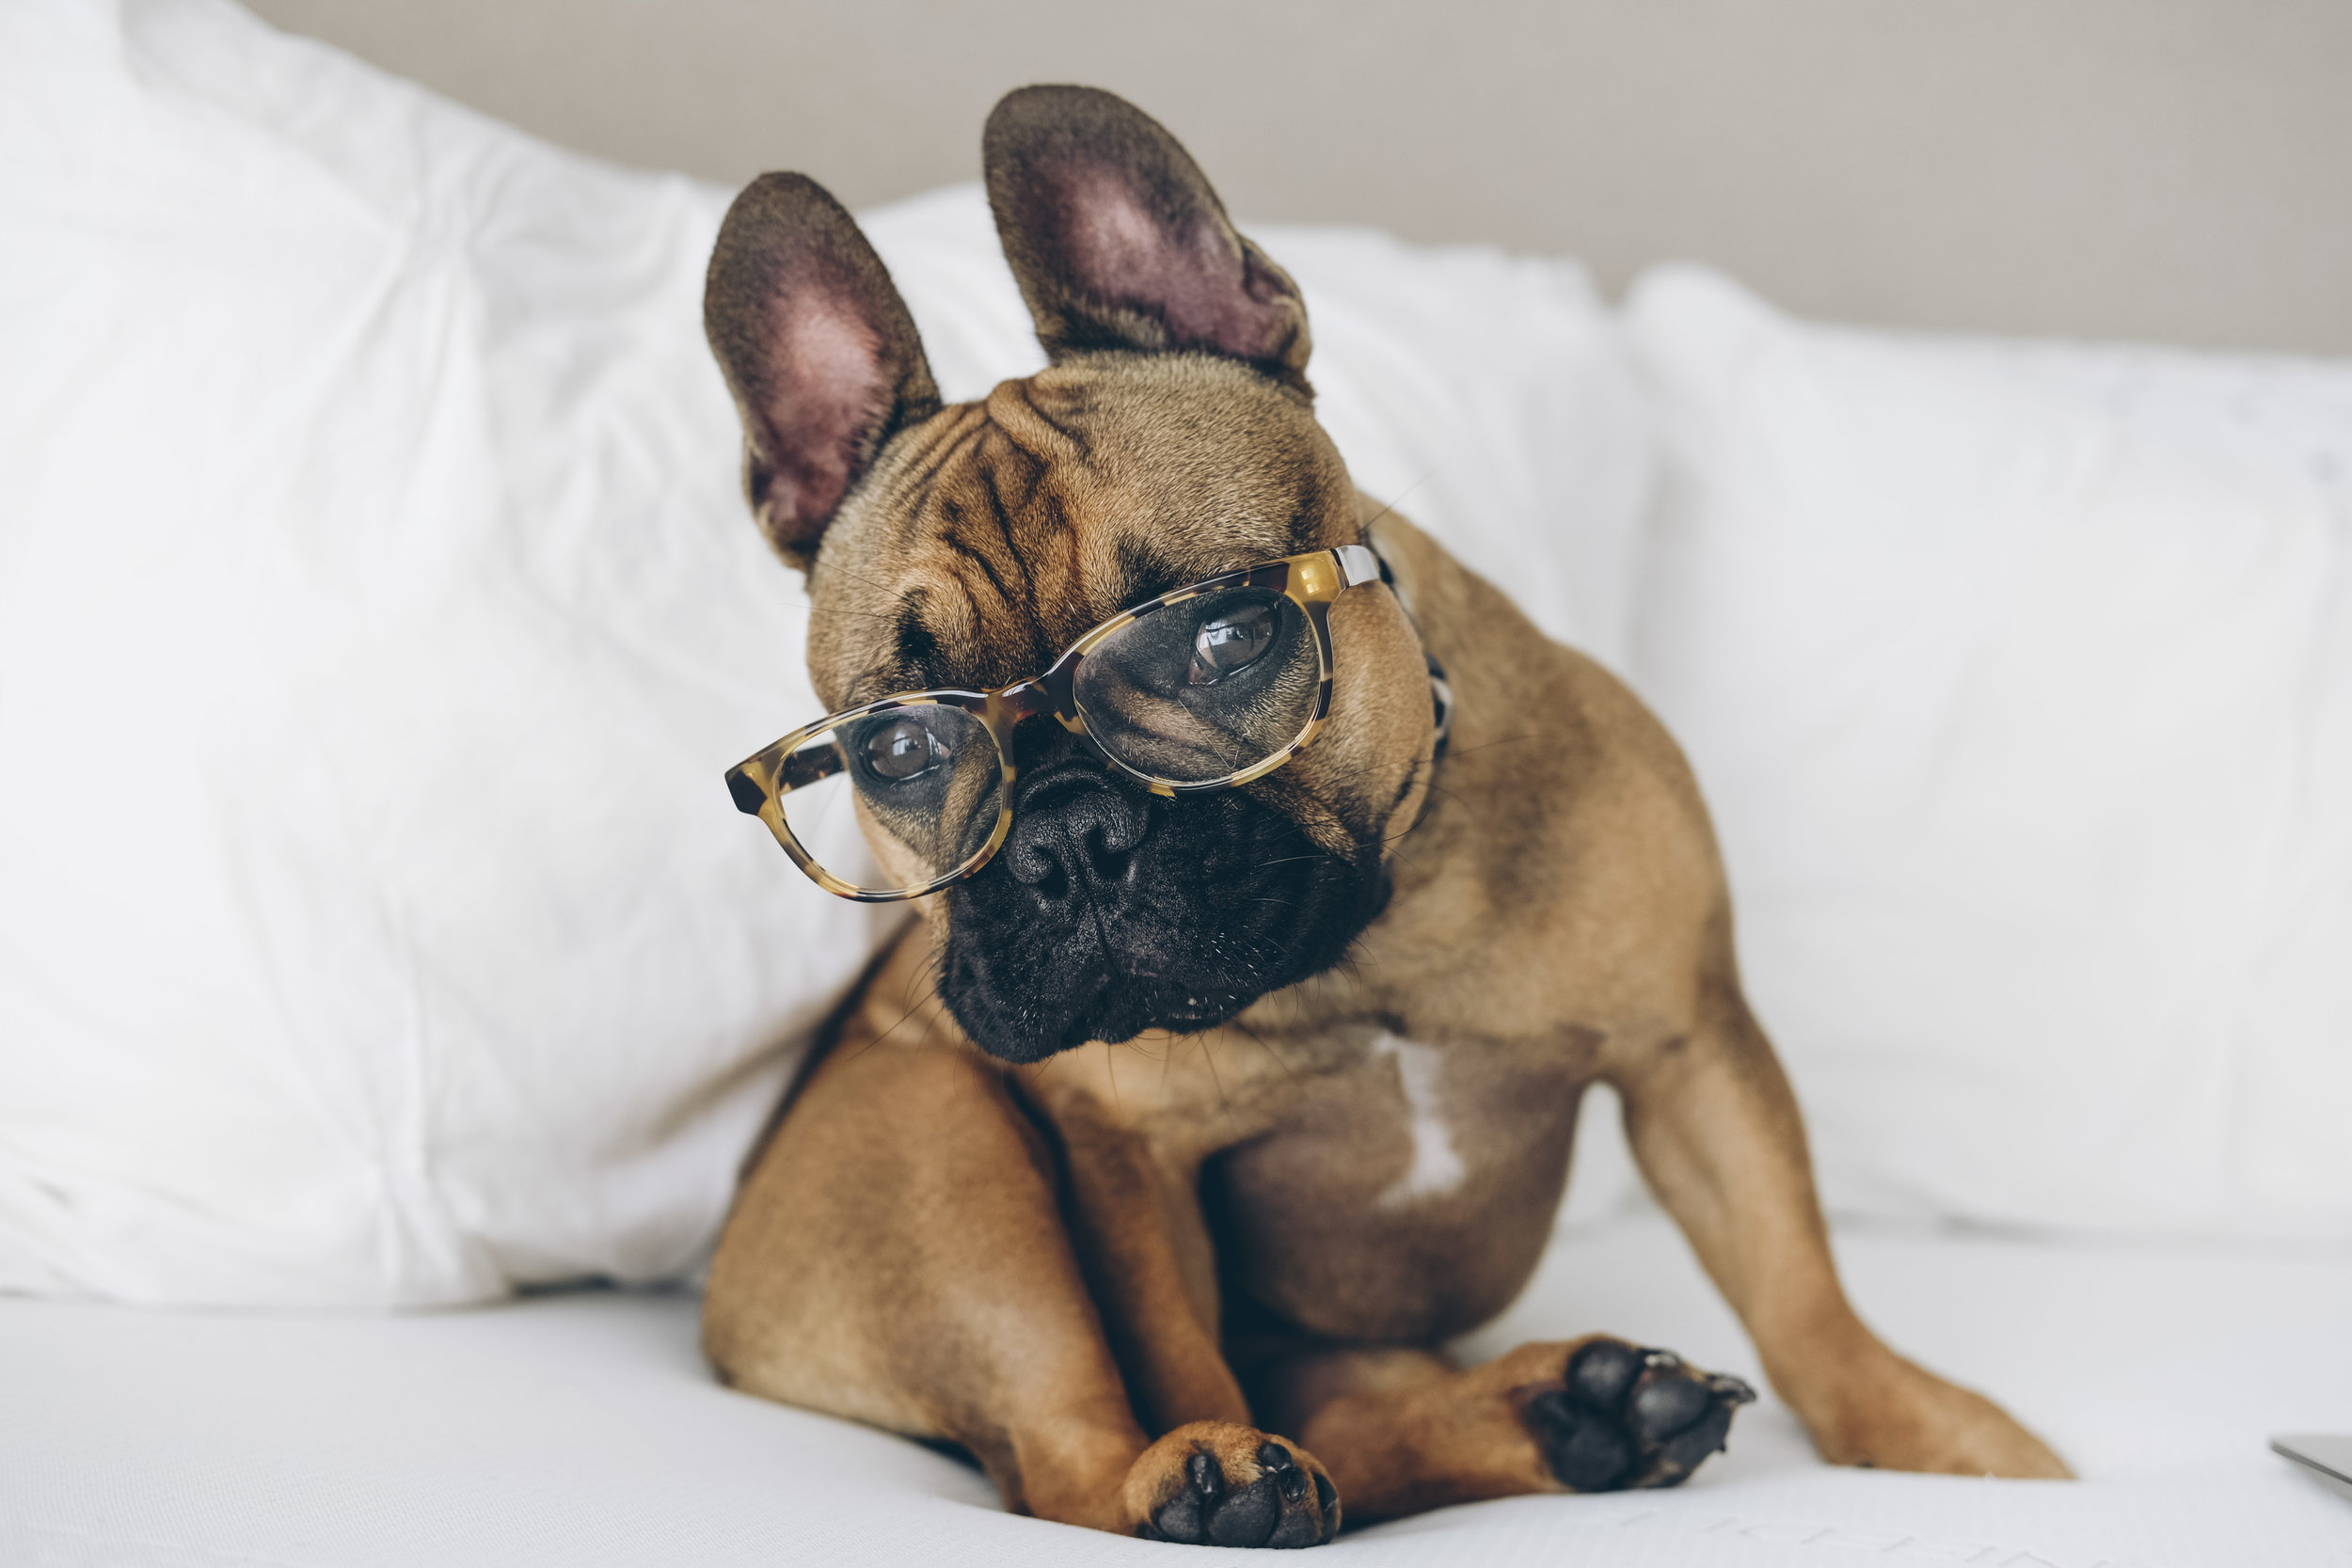 Tuft & Needle memory foam mattress review.  Me & Mr. Jones home decor.  French bulldog with glasses.  Frenchie Halloween costume.